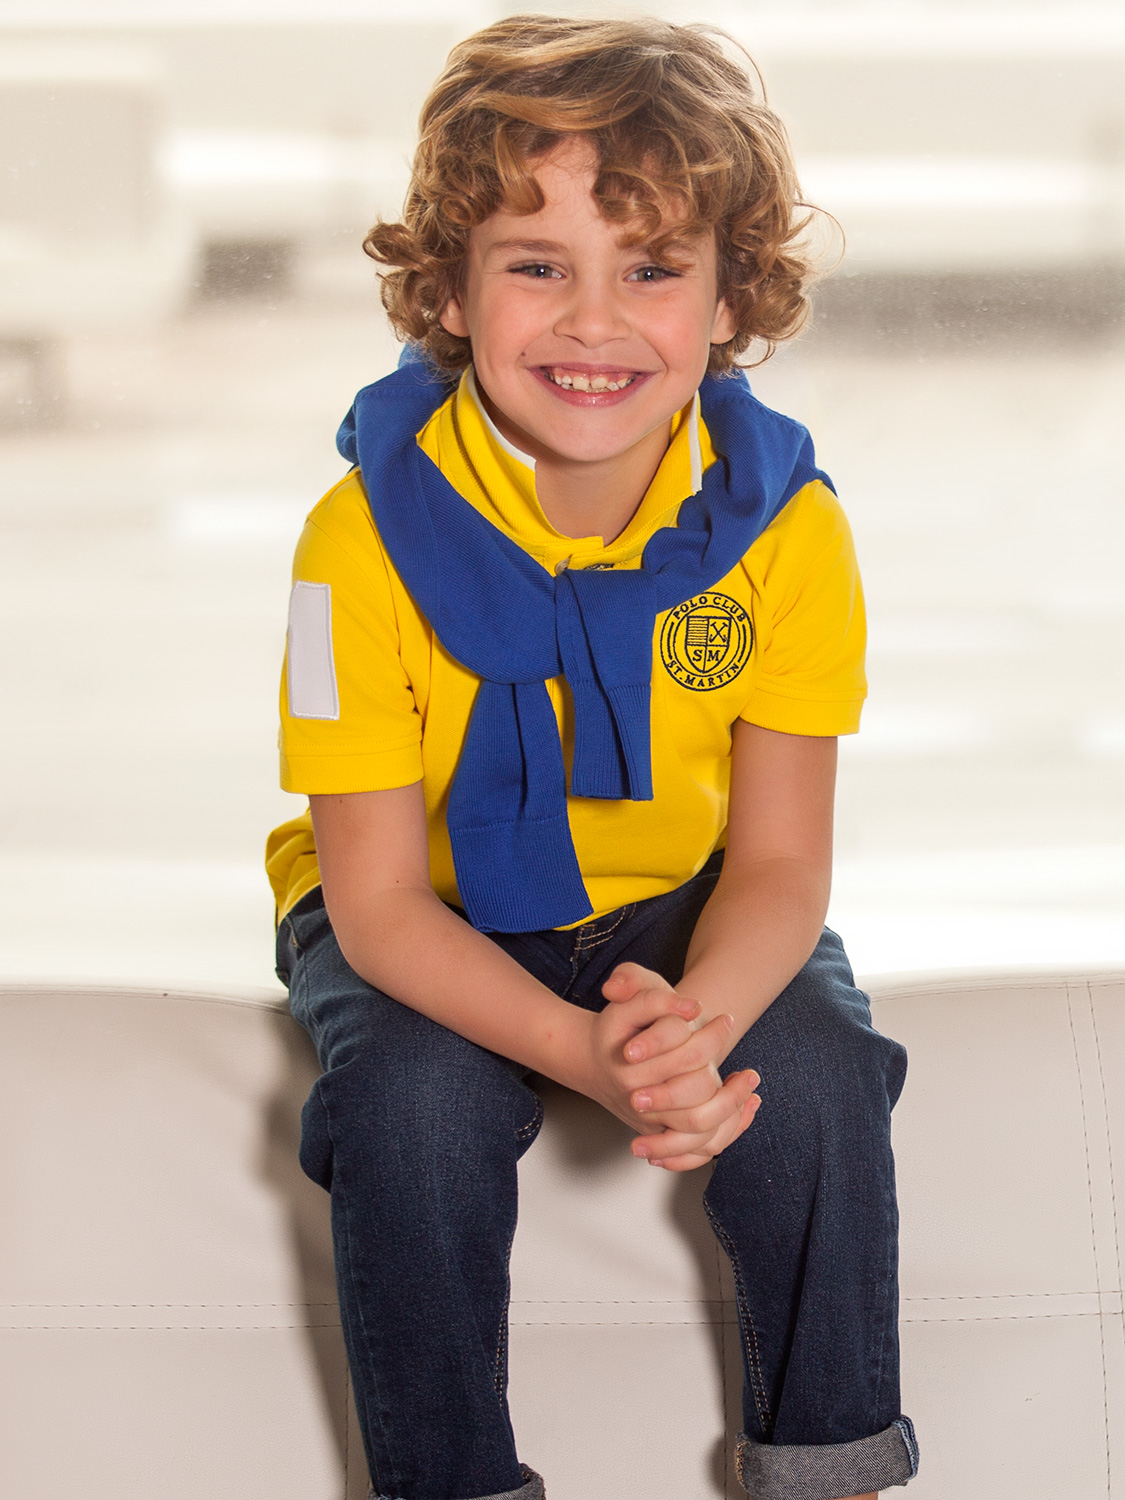 agnzia-comunicazione-napoli-roberto-guariglia-advertising-portfolio-work-fashion-polo-club-st-martin-fashion-kids-brand-3.jpg